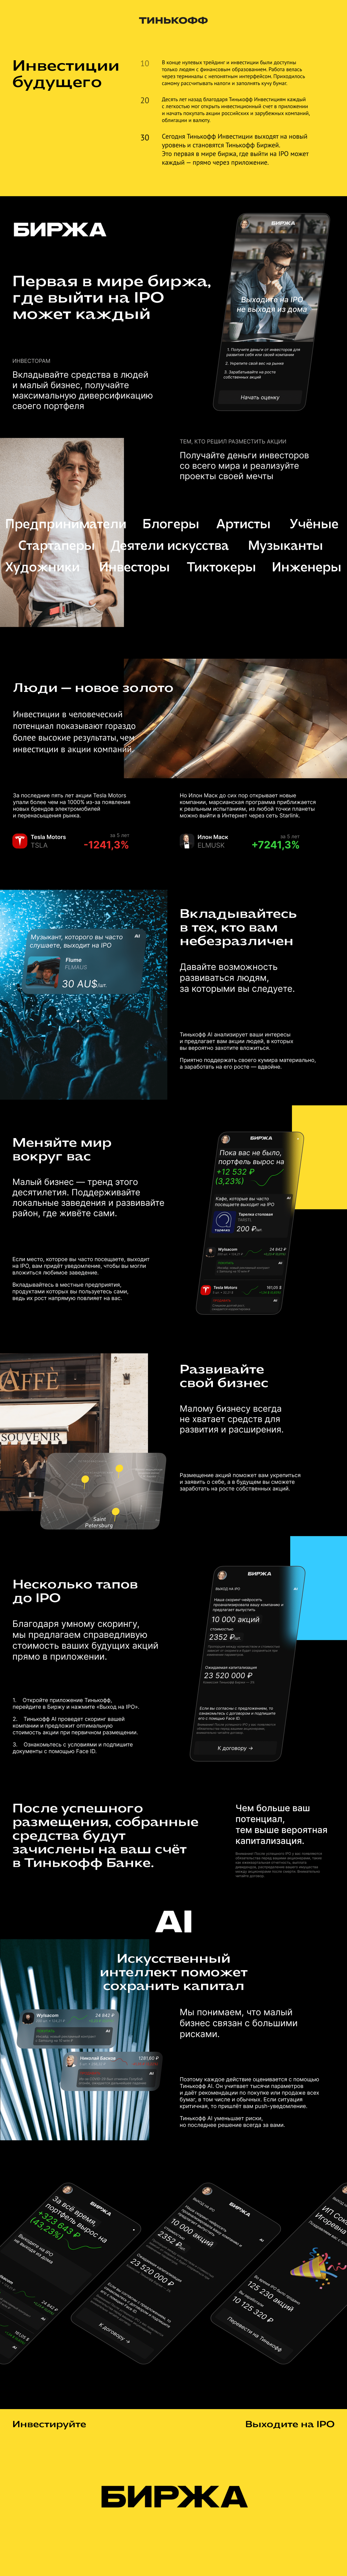 Bank finance future Investments Mobile app UI ux